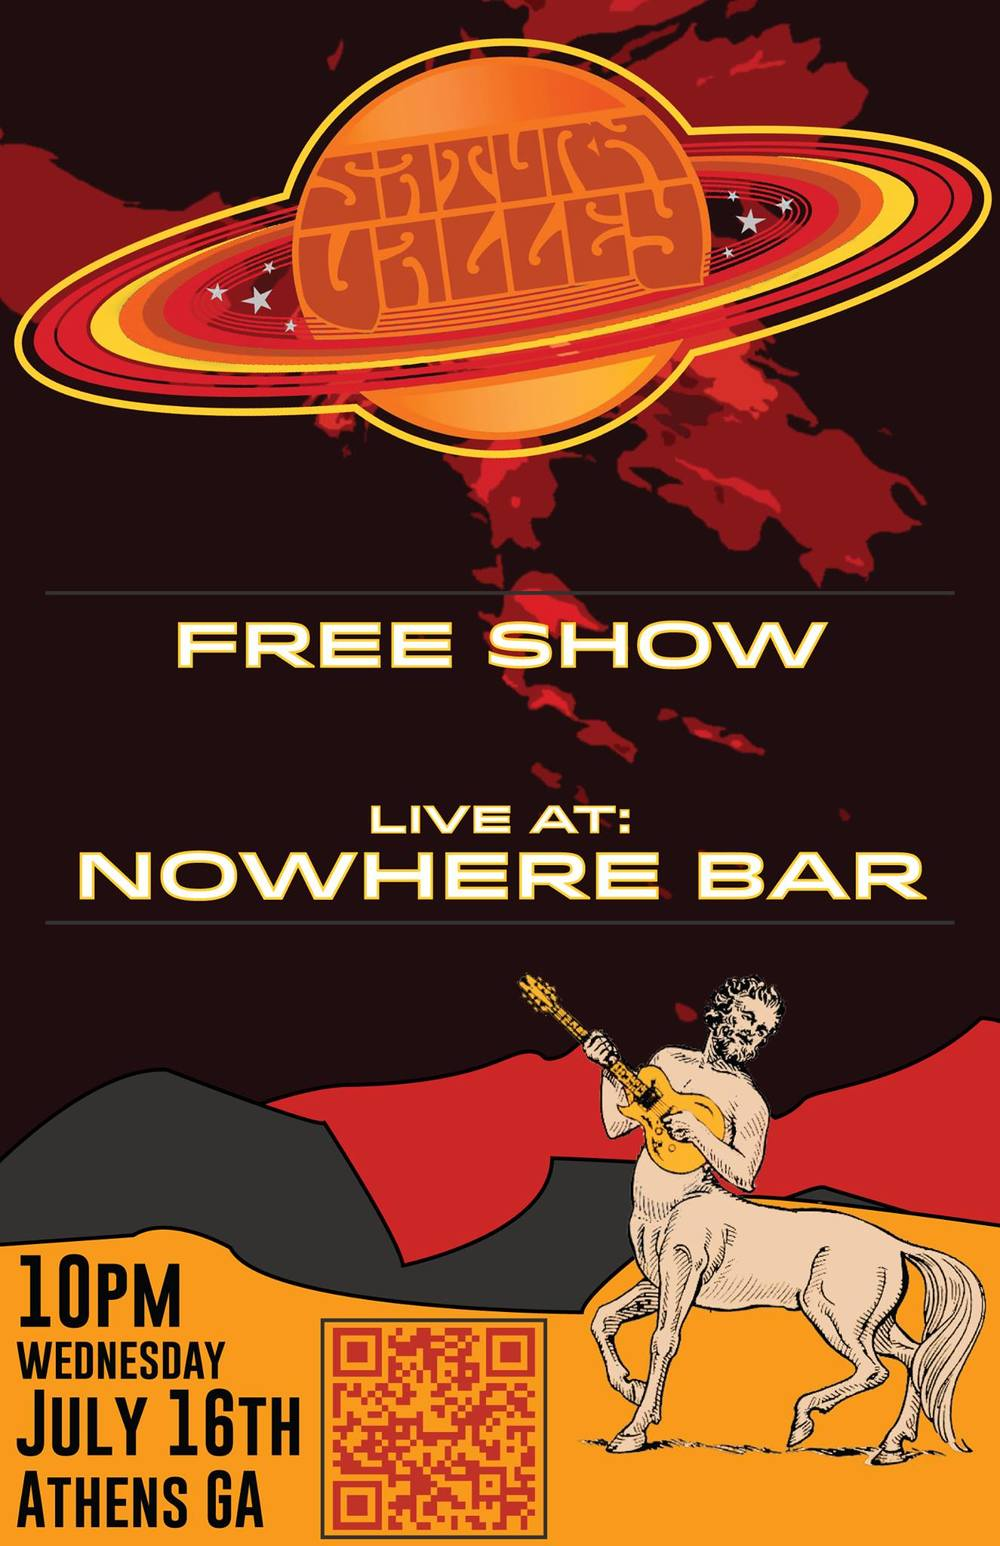 Nowhere Bar 3.jpg